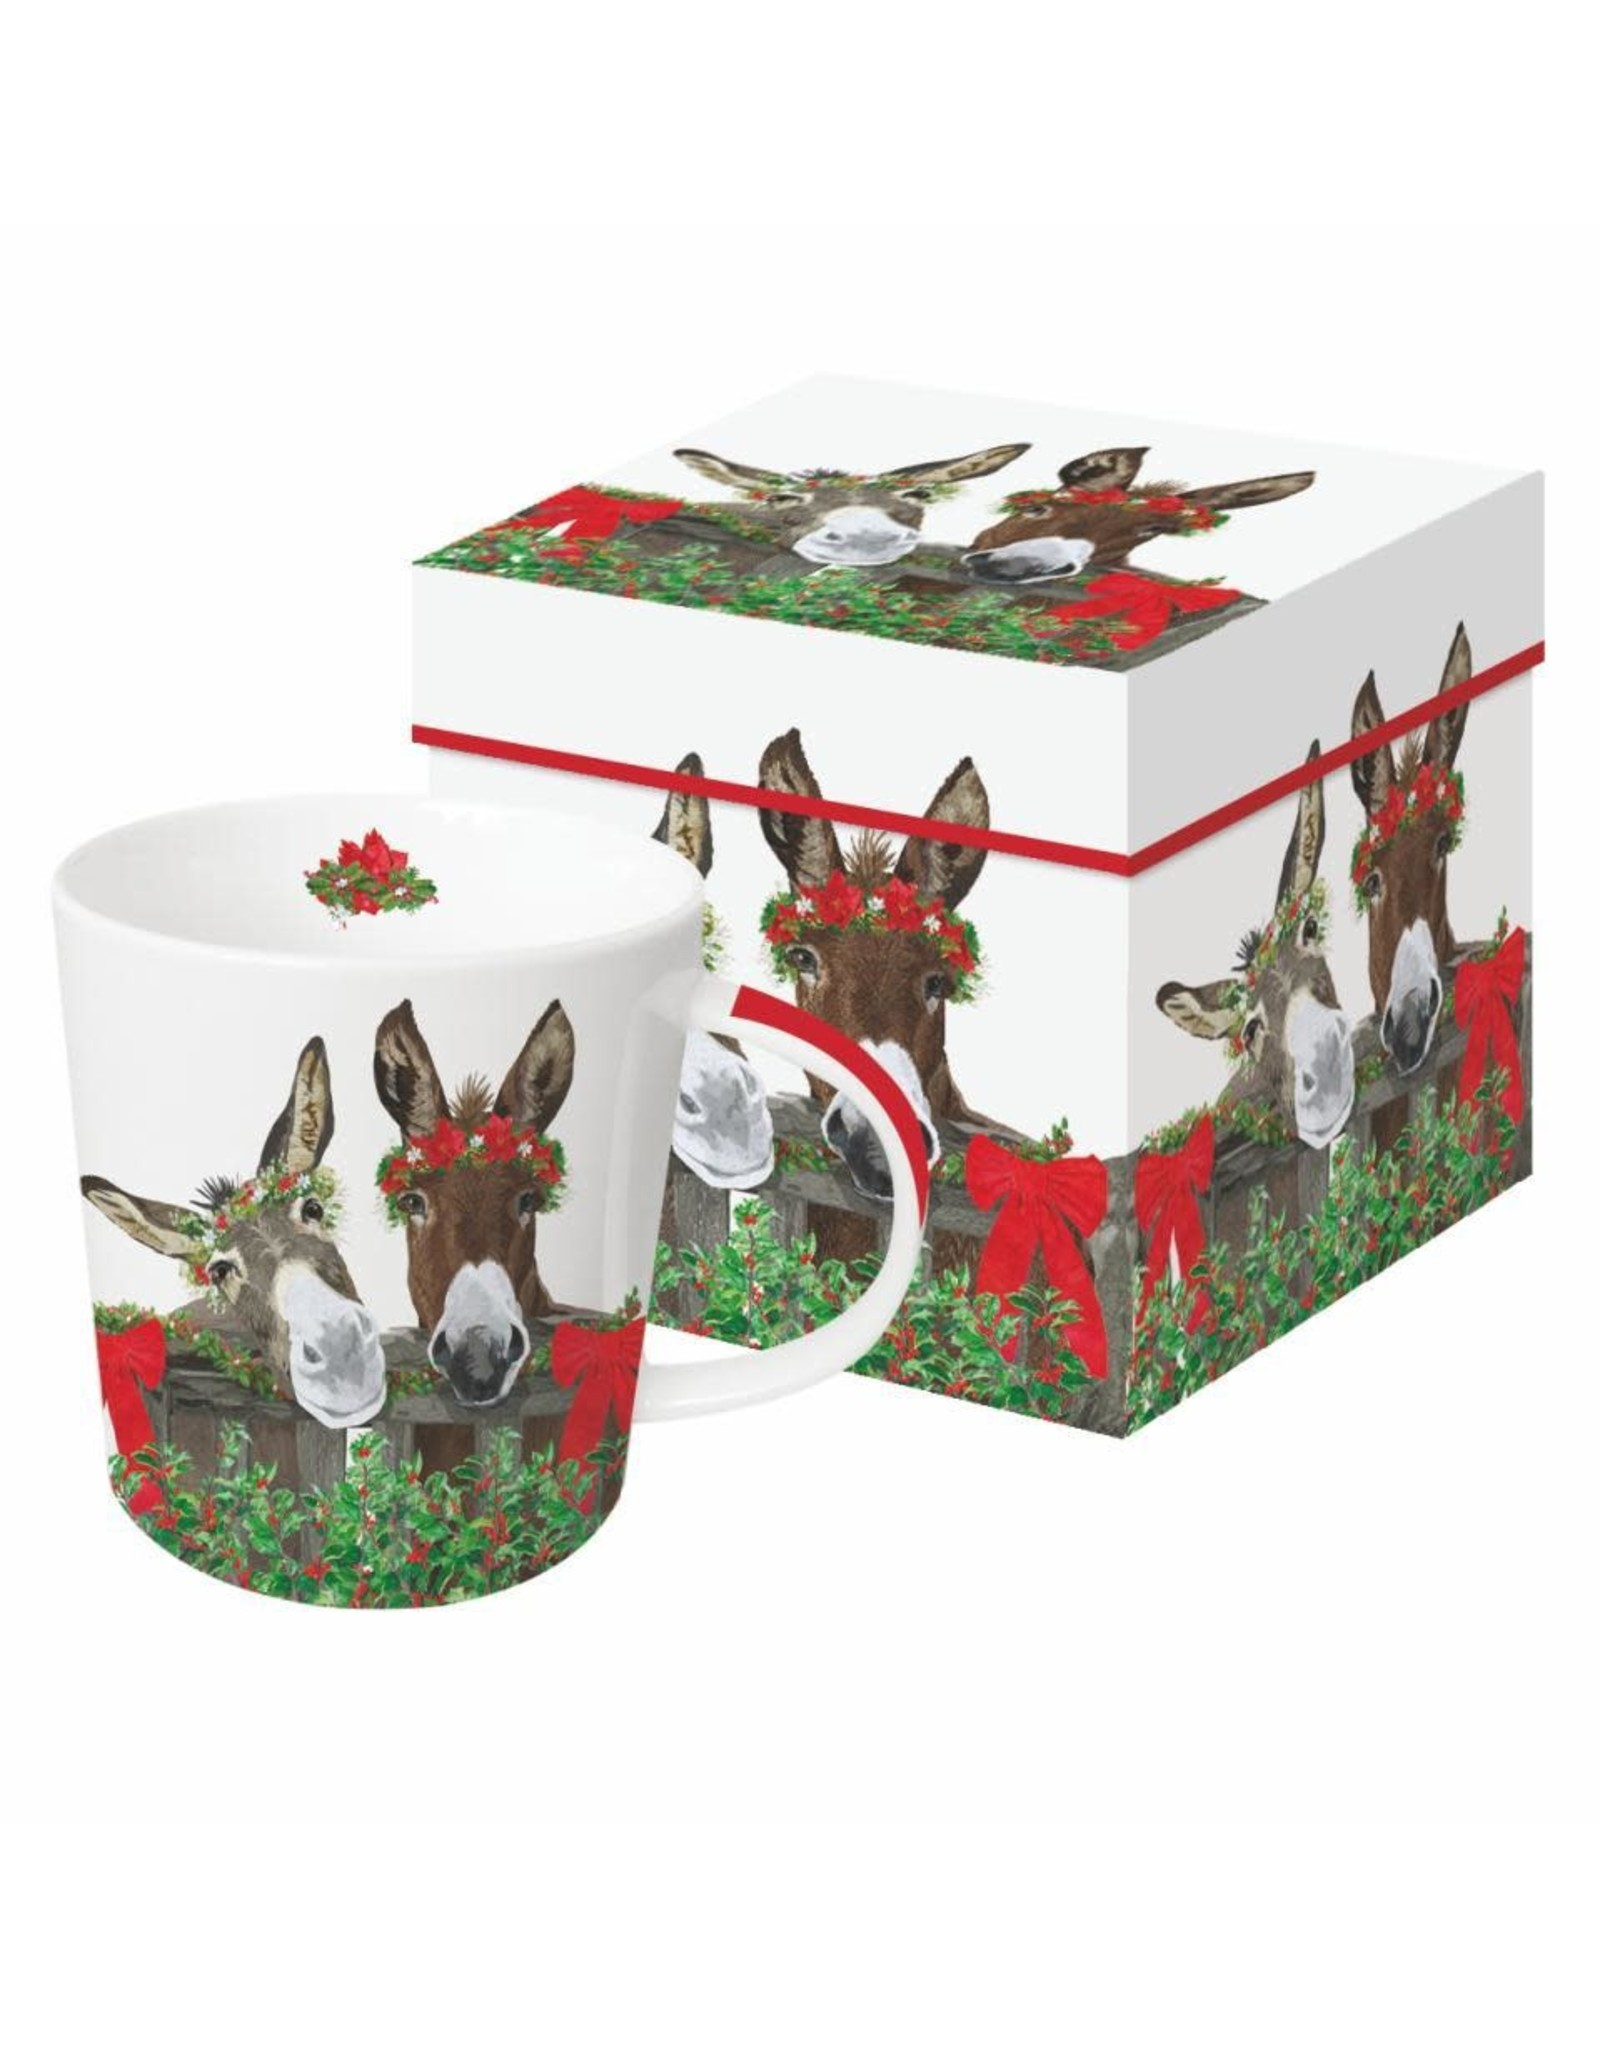 Paper Products Designs PEANUT BUTTER & JELLY HOLIDAY MUG IN A GIFT BOX